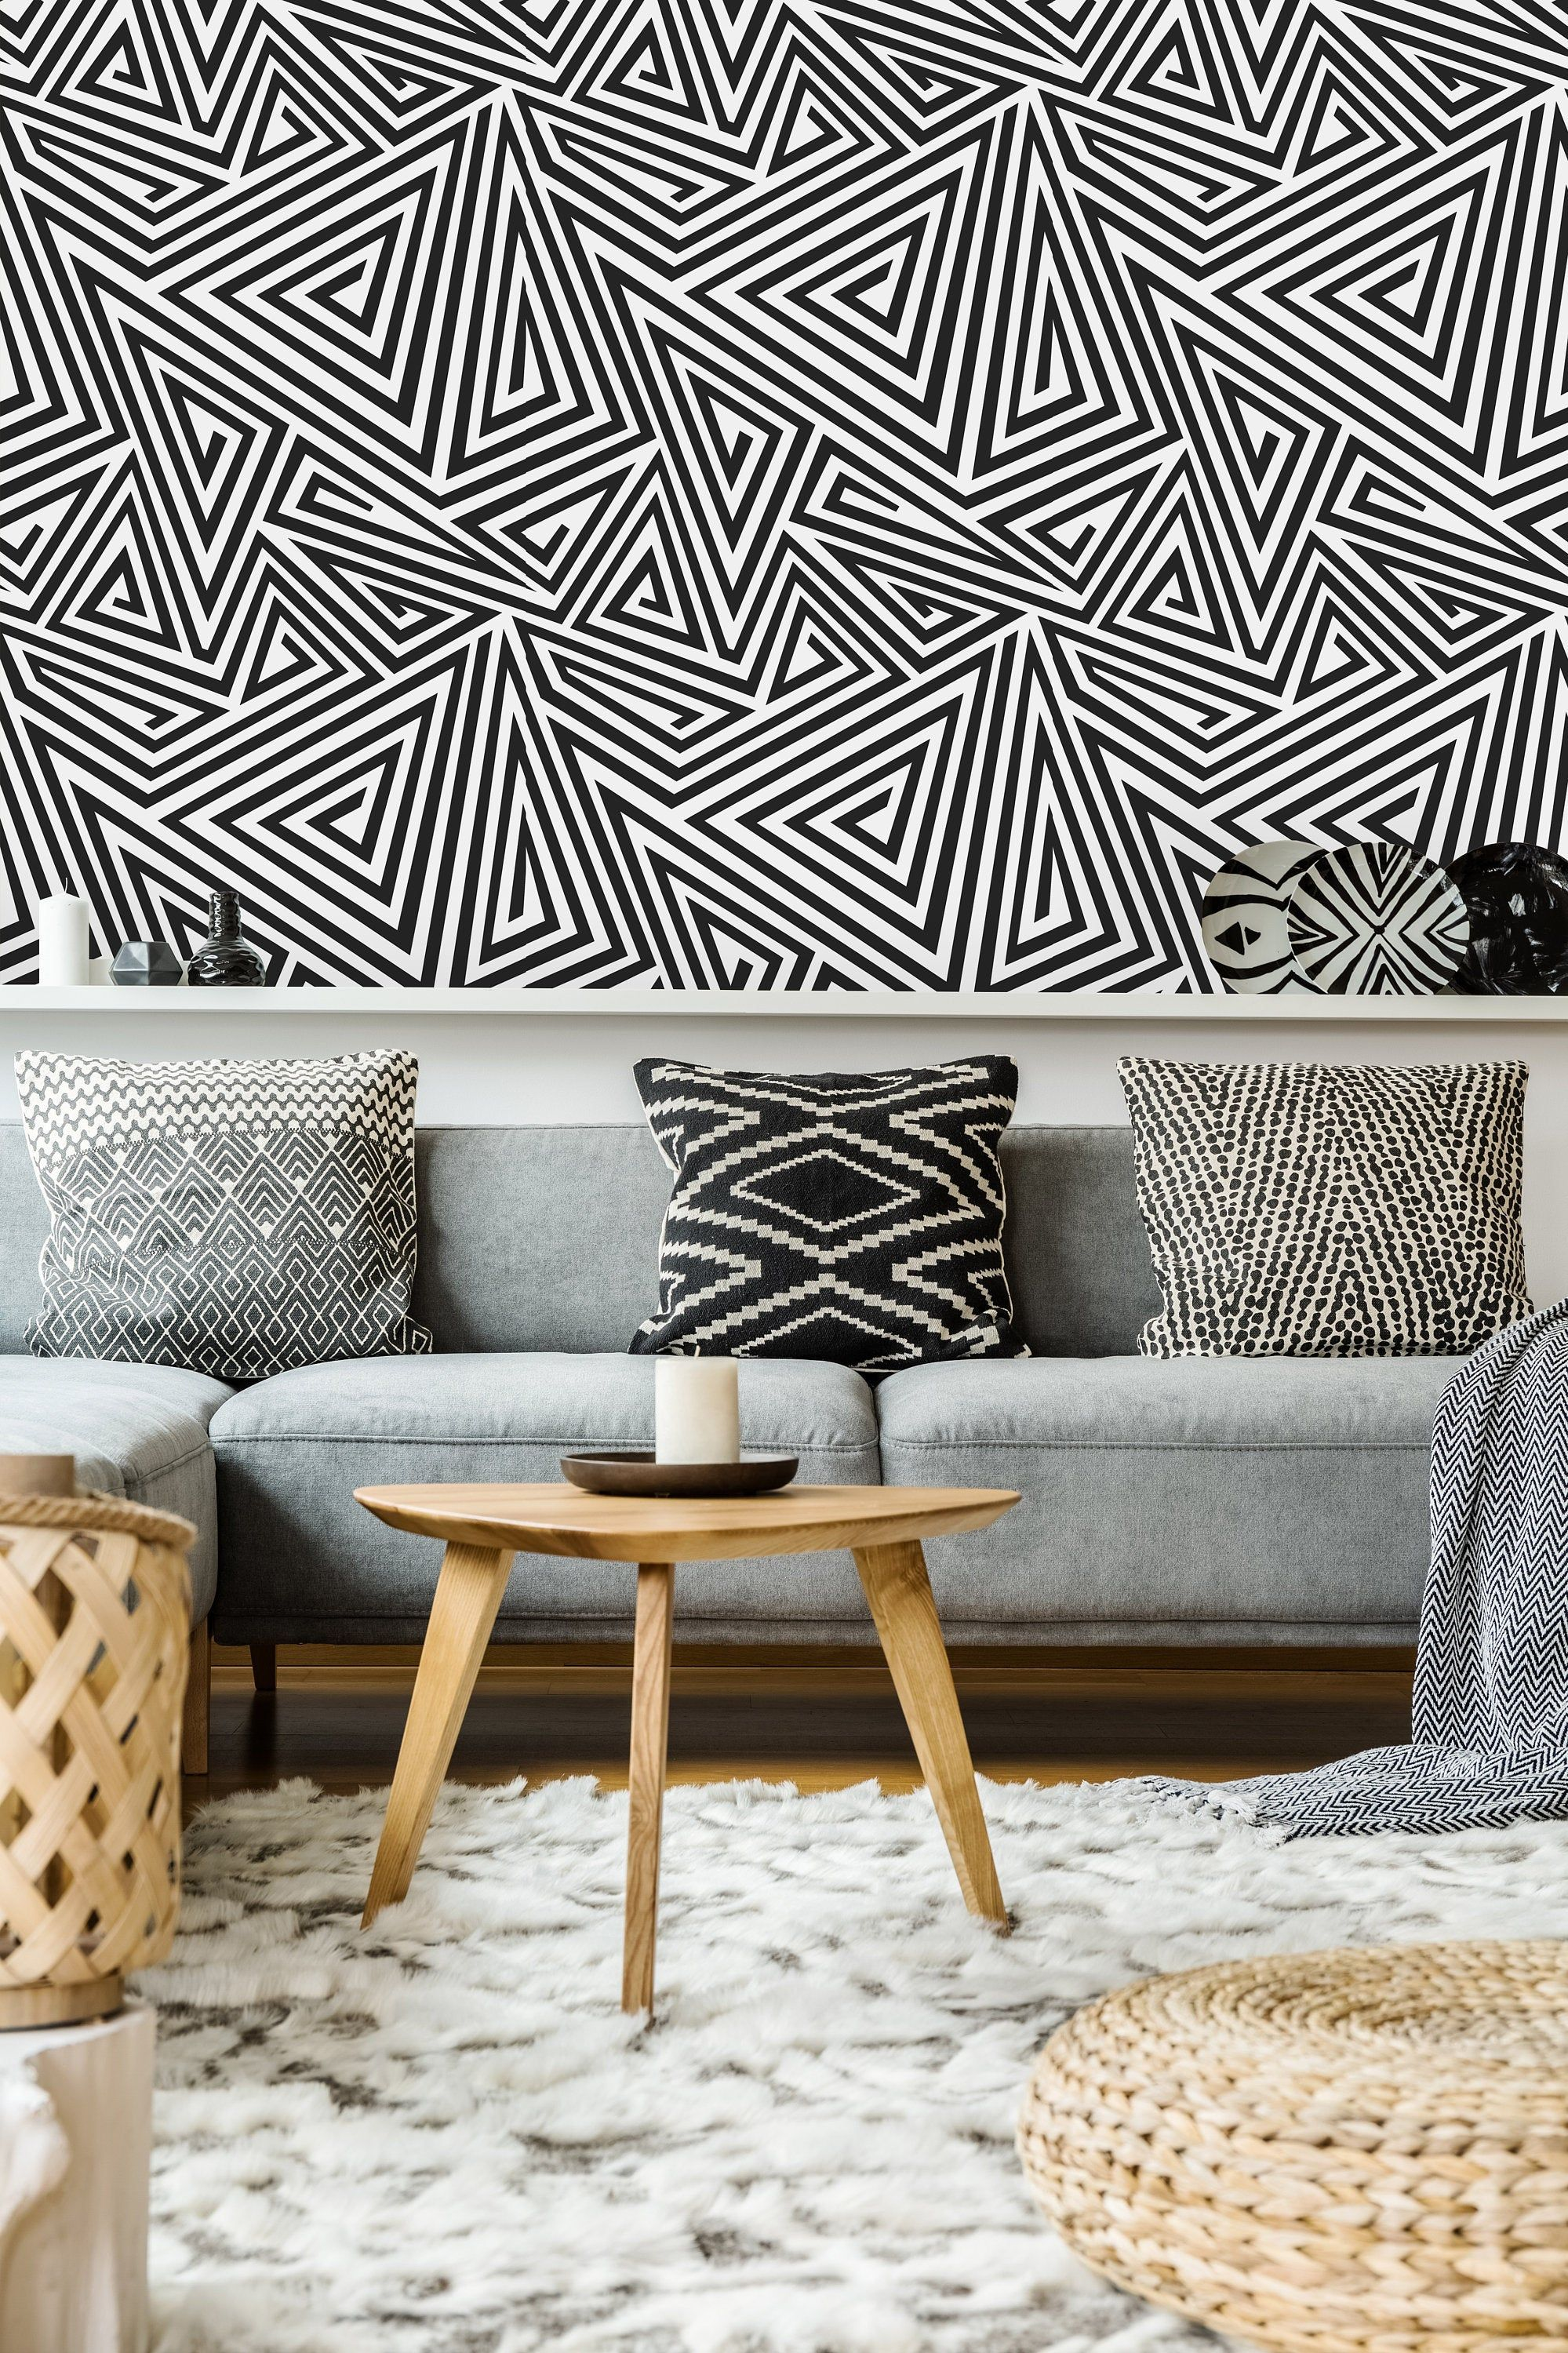 Geometric Spiral Triangle Removable Wallpaper Peel And Stick Wallpaper Wall Mural Self Adhesive Wallpaper Wall Wallpaper Self Adhesive Wallpaper Peel Stick Wallpaper